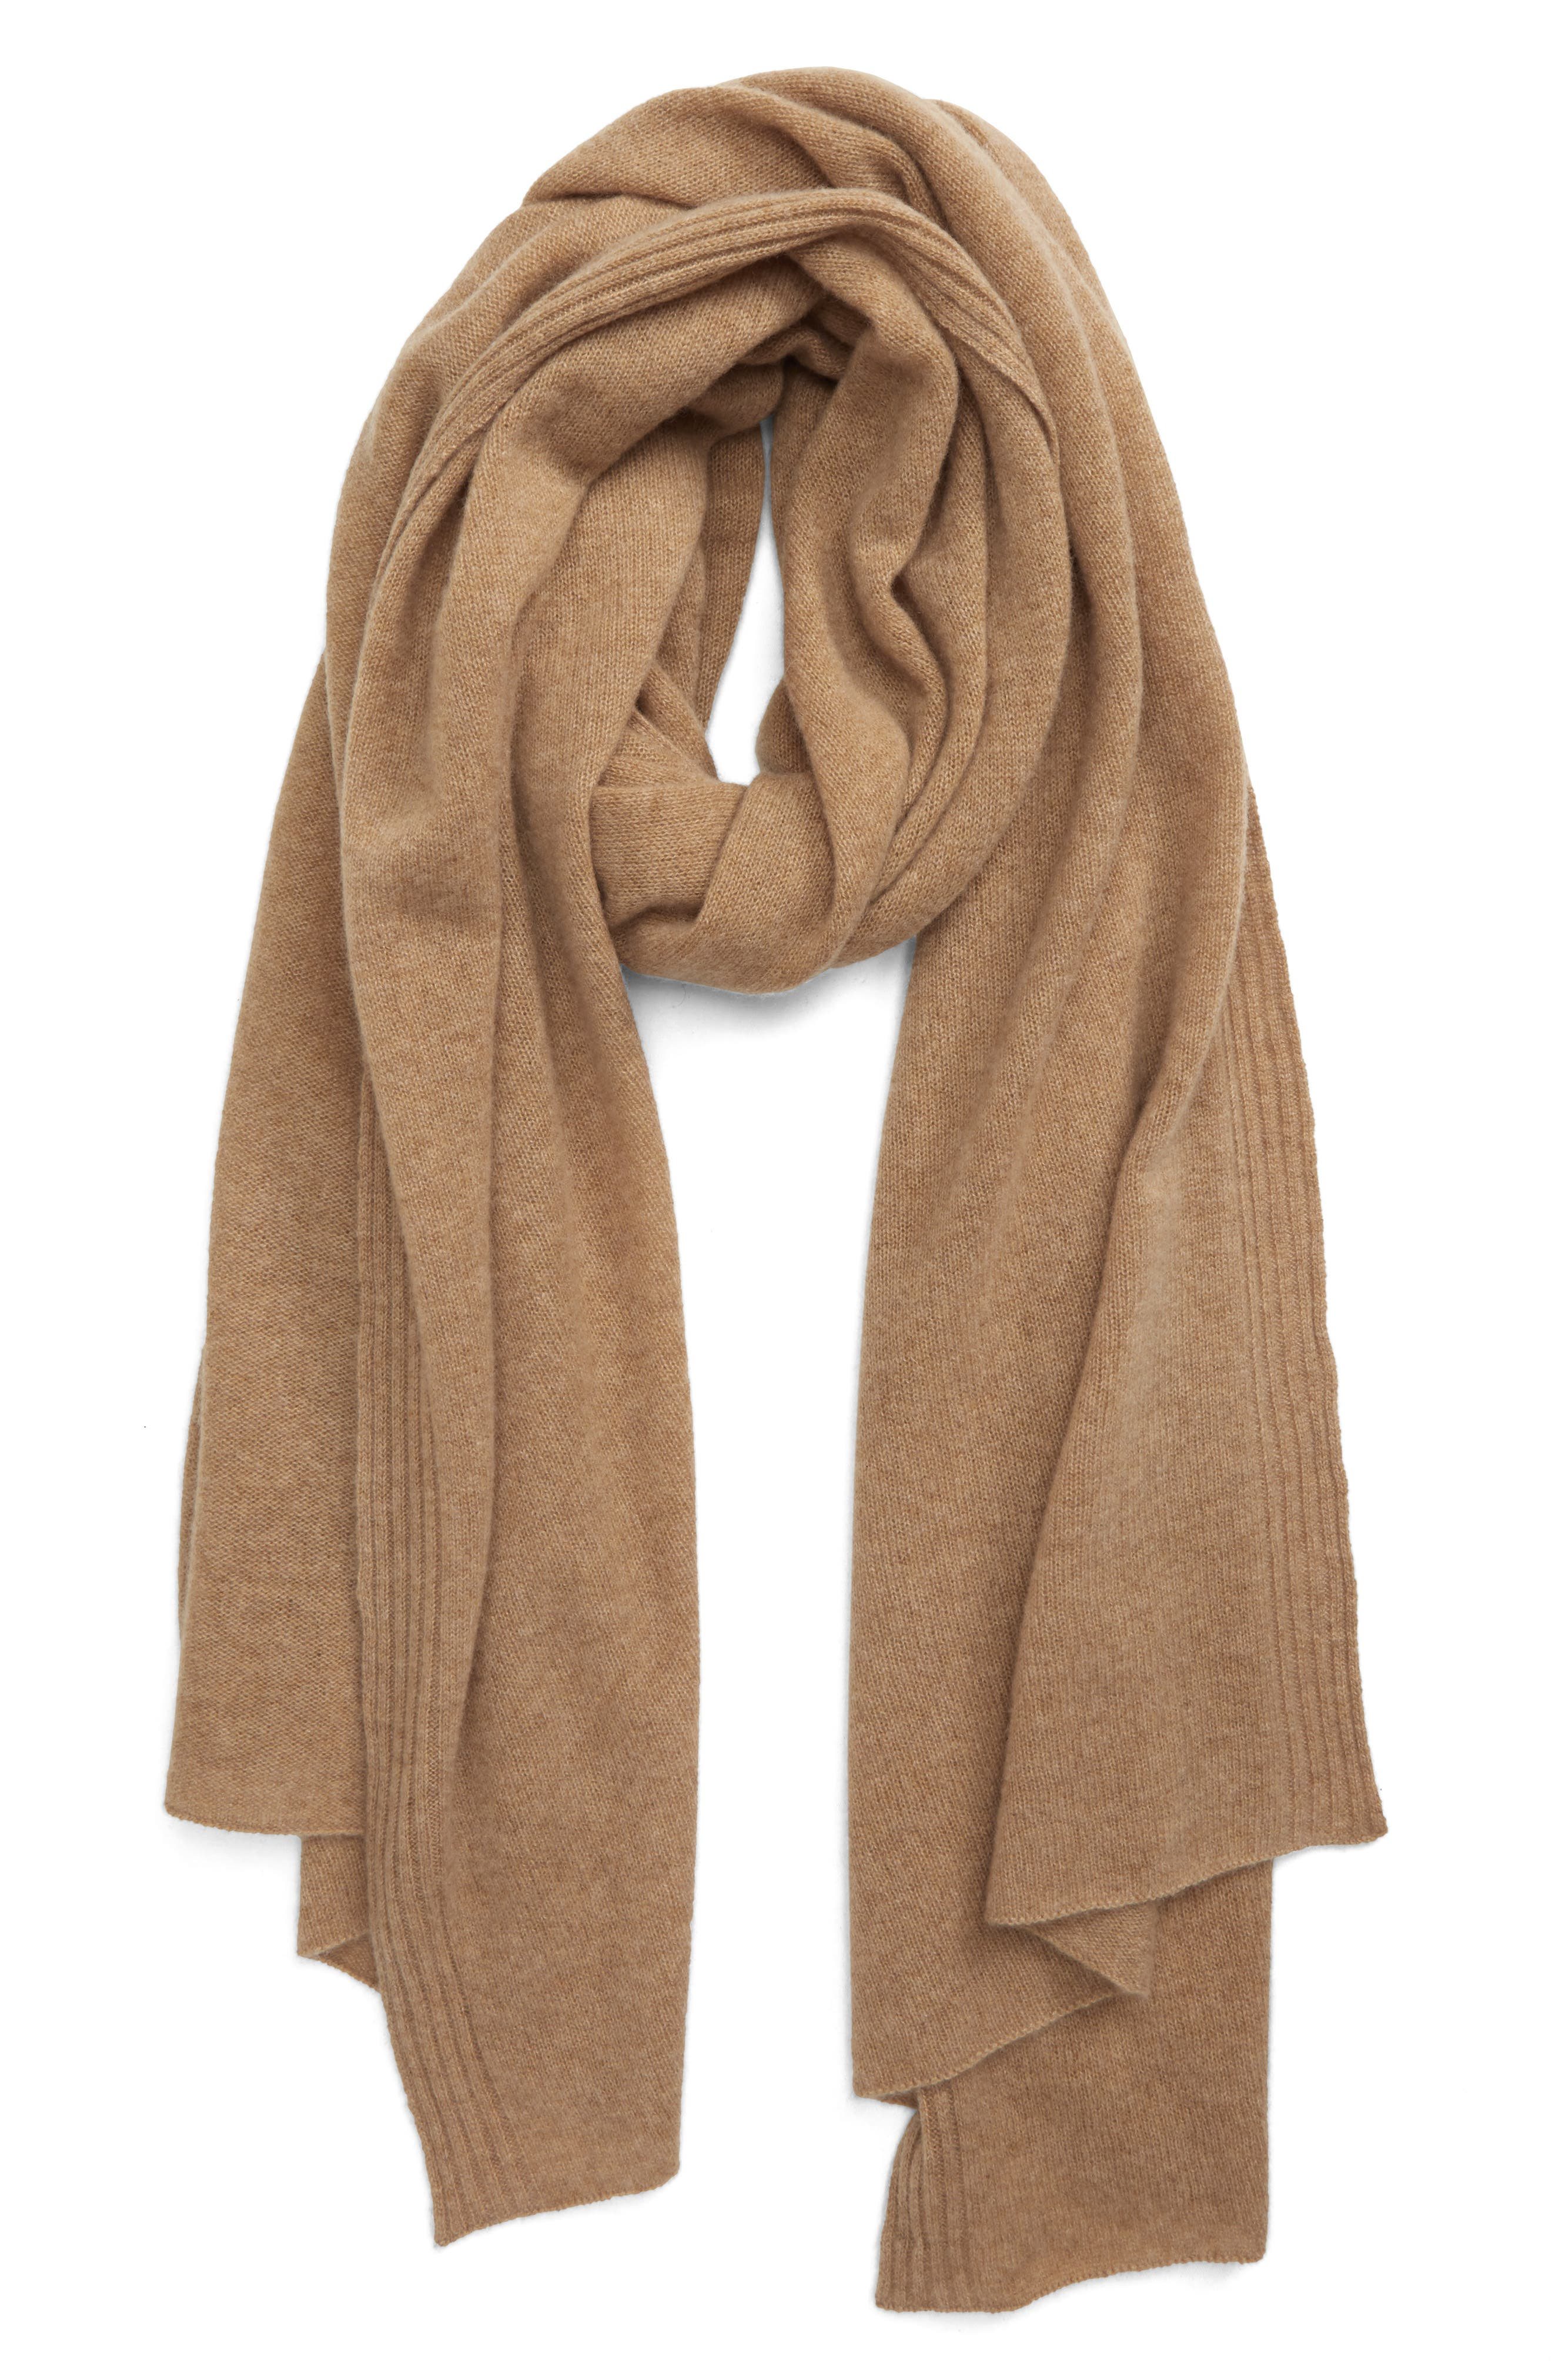 Ribbing trims the long edges of this luxe cashmere scarf, enhancing the rich look with a sophisticated textural accent. Style Name: Halogen Cashmere Scarf. Style Number: 6018088. Available in stores.